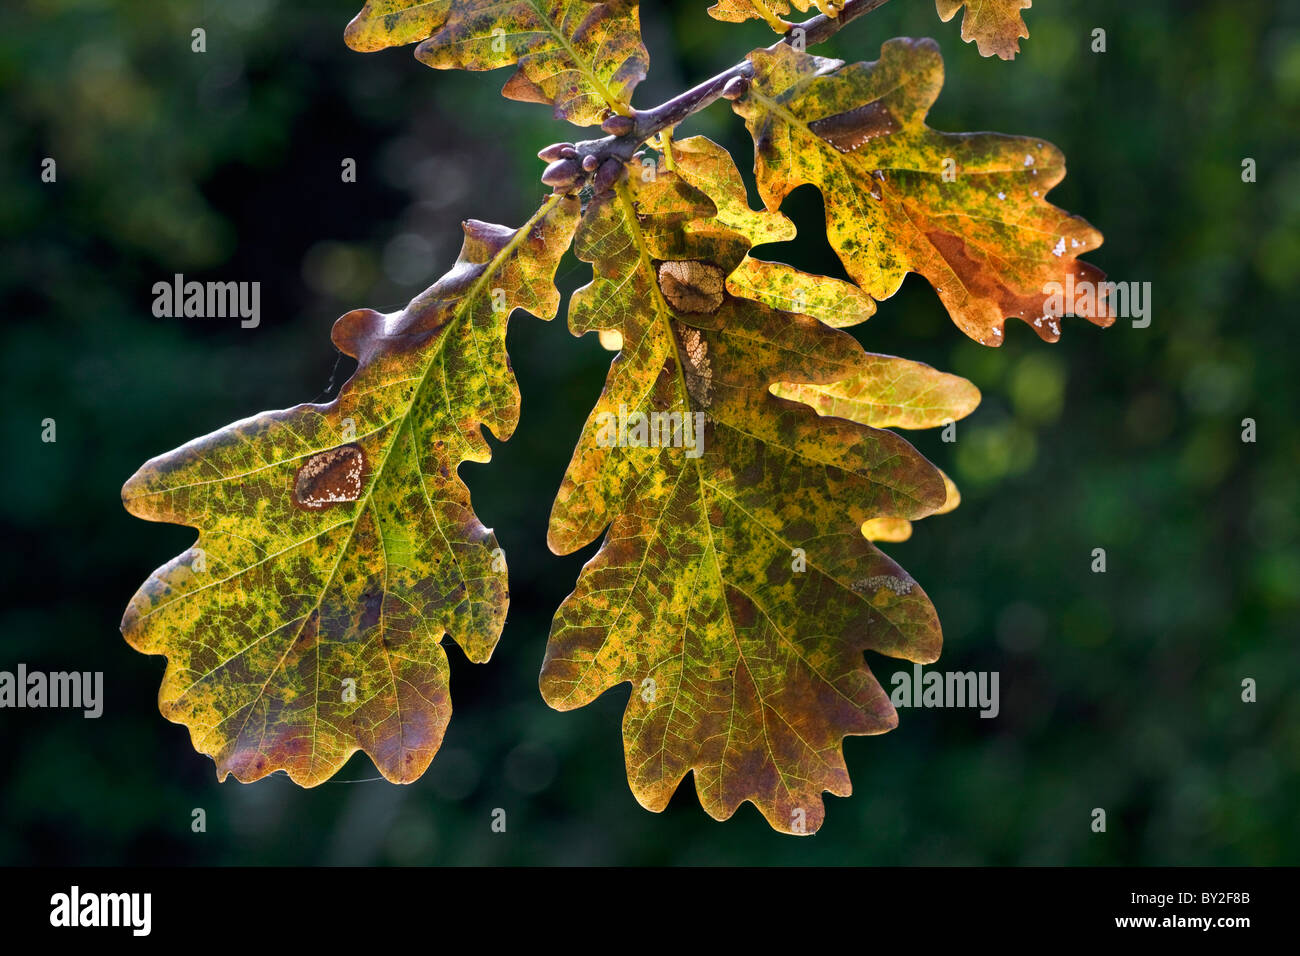 Pedunculate Oak / English oak (Quercus robur) leaves in autumn, Belgium - Stock Image